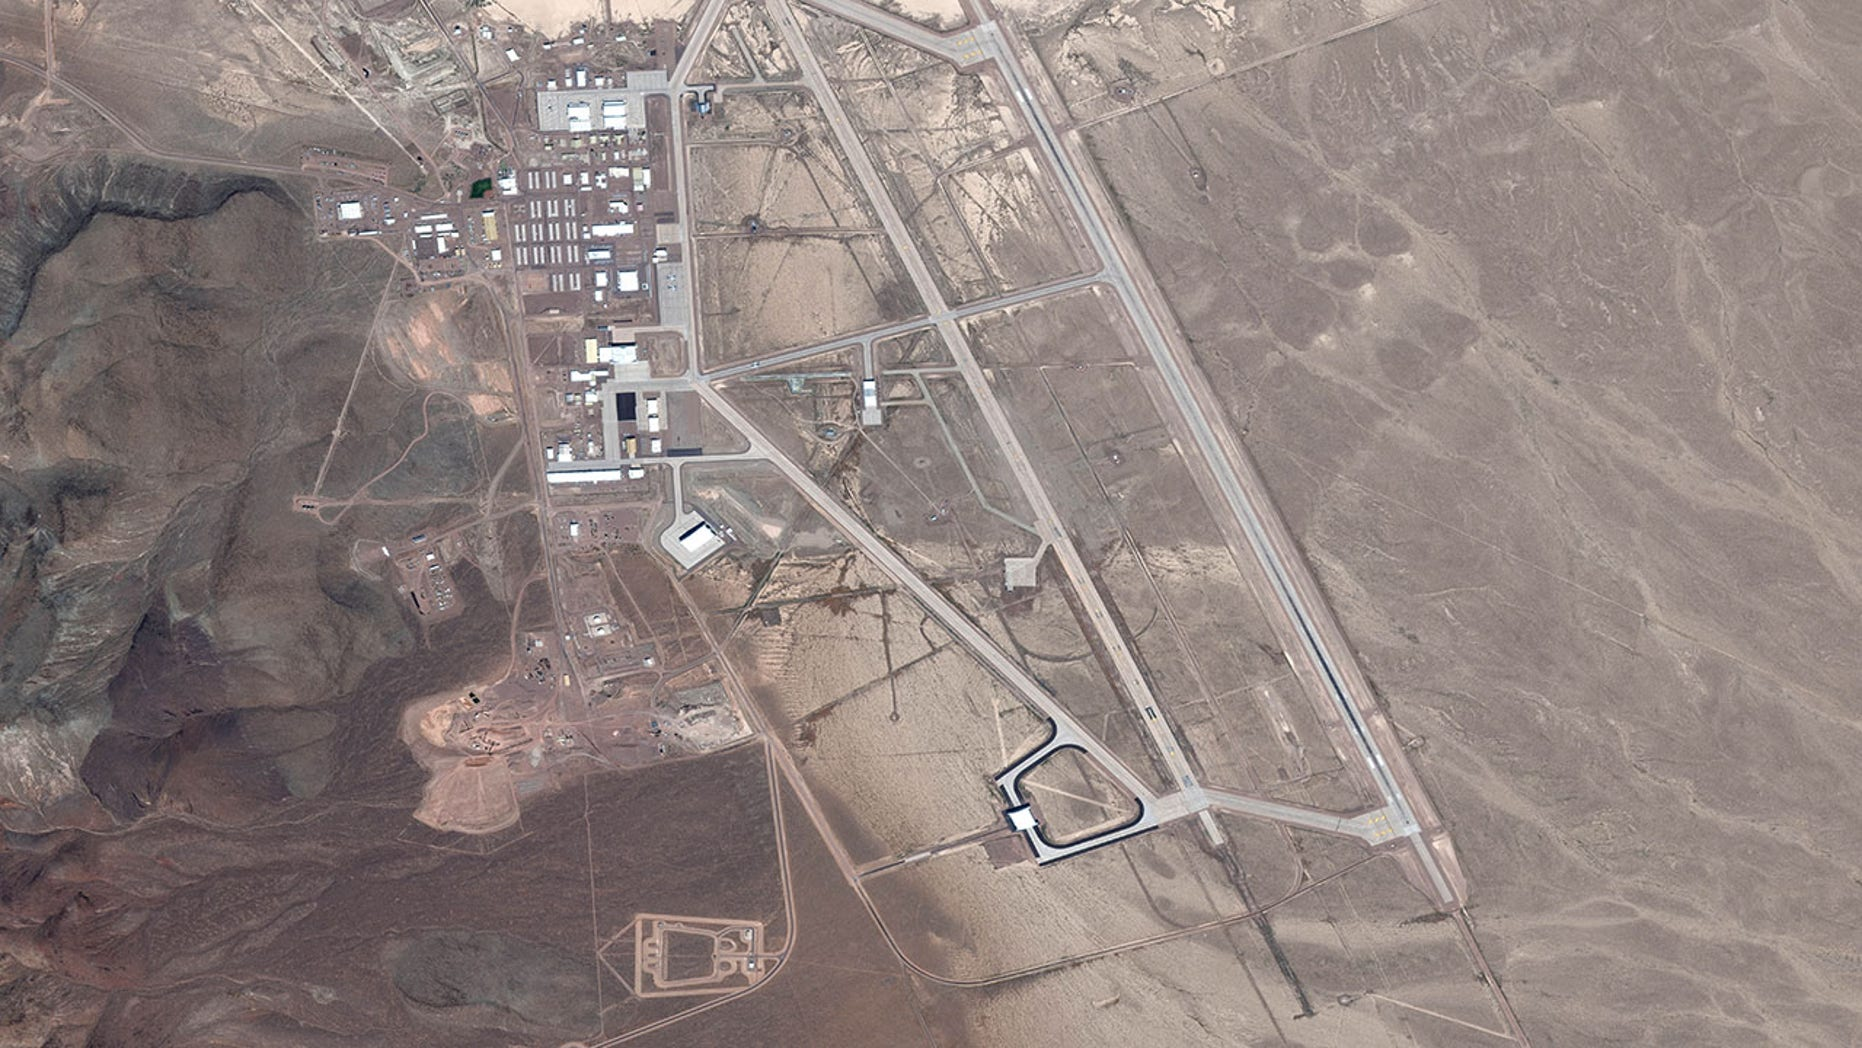 Storming Area 51 sparks interest, jokes among million social media users